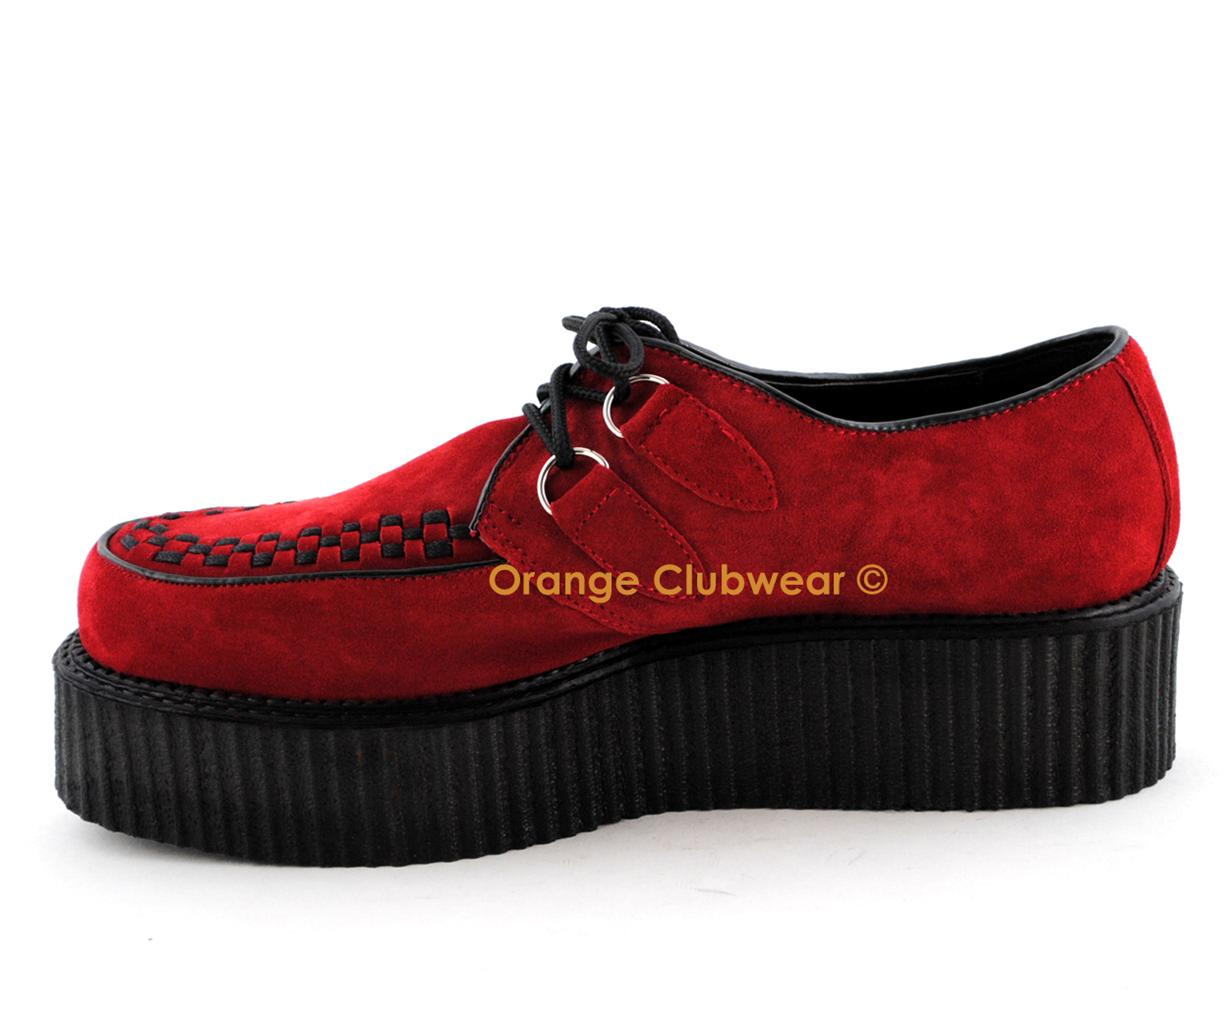 Crepper Shoes for BURNING MAN Demonia Alternative Gothic Shoes, Here's were you will find all your special Burning music festival.